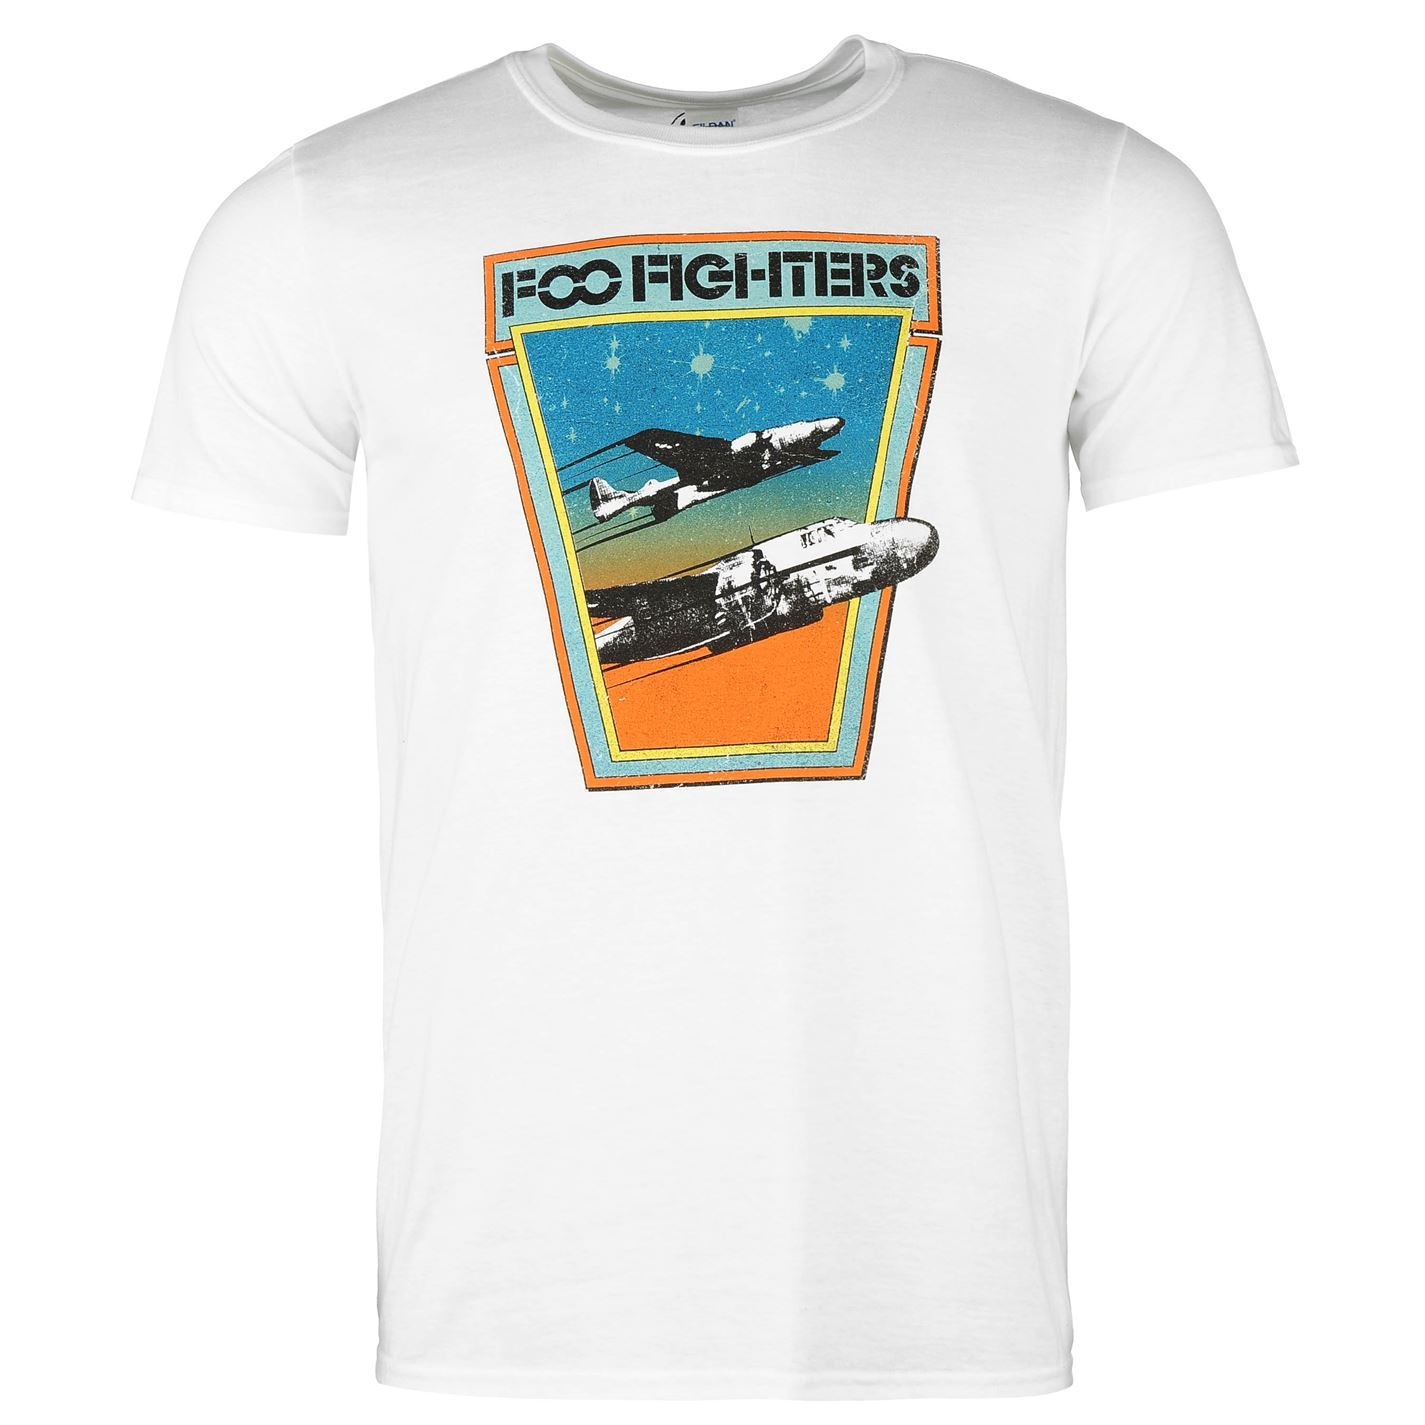 6cc1901c5af1 Details about Foo Fighters Jets T-Shirt Mens White Casual Wear Top Tee Shirt